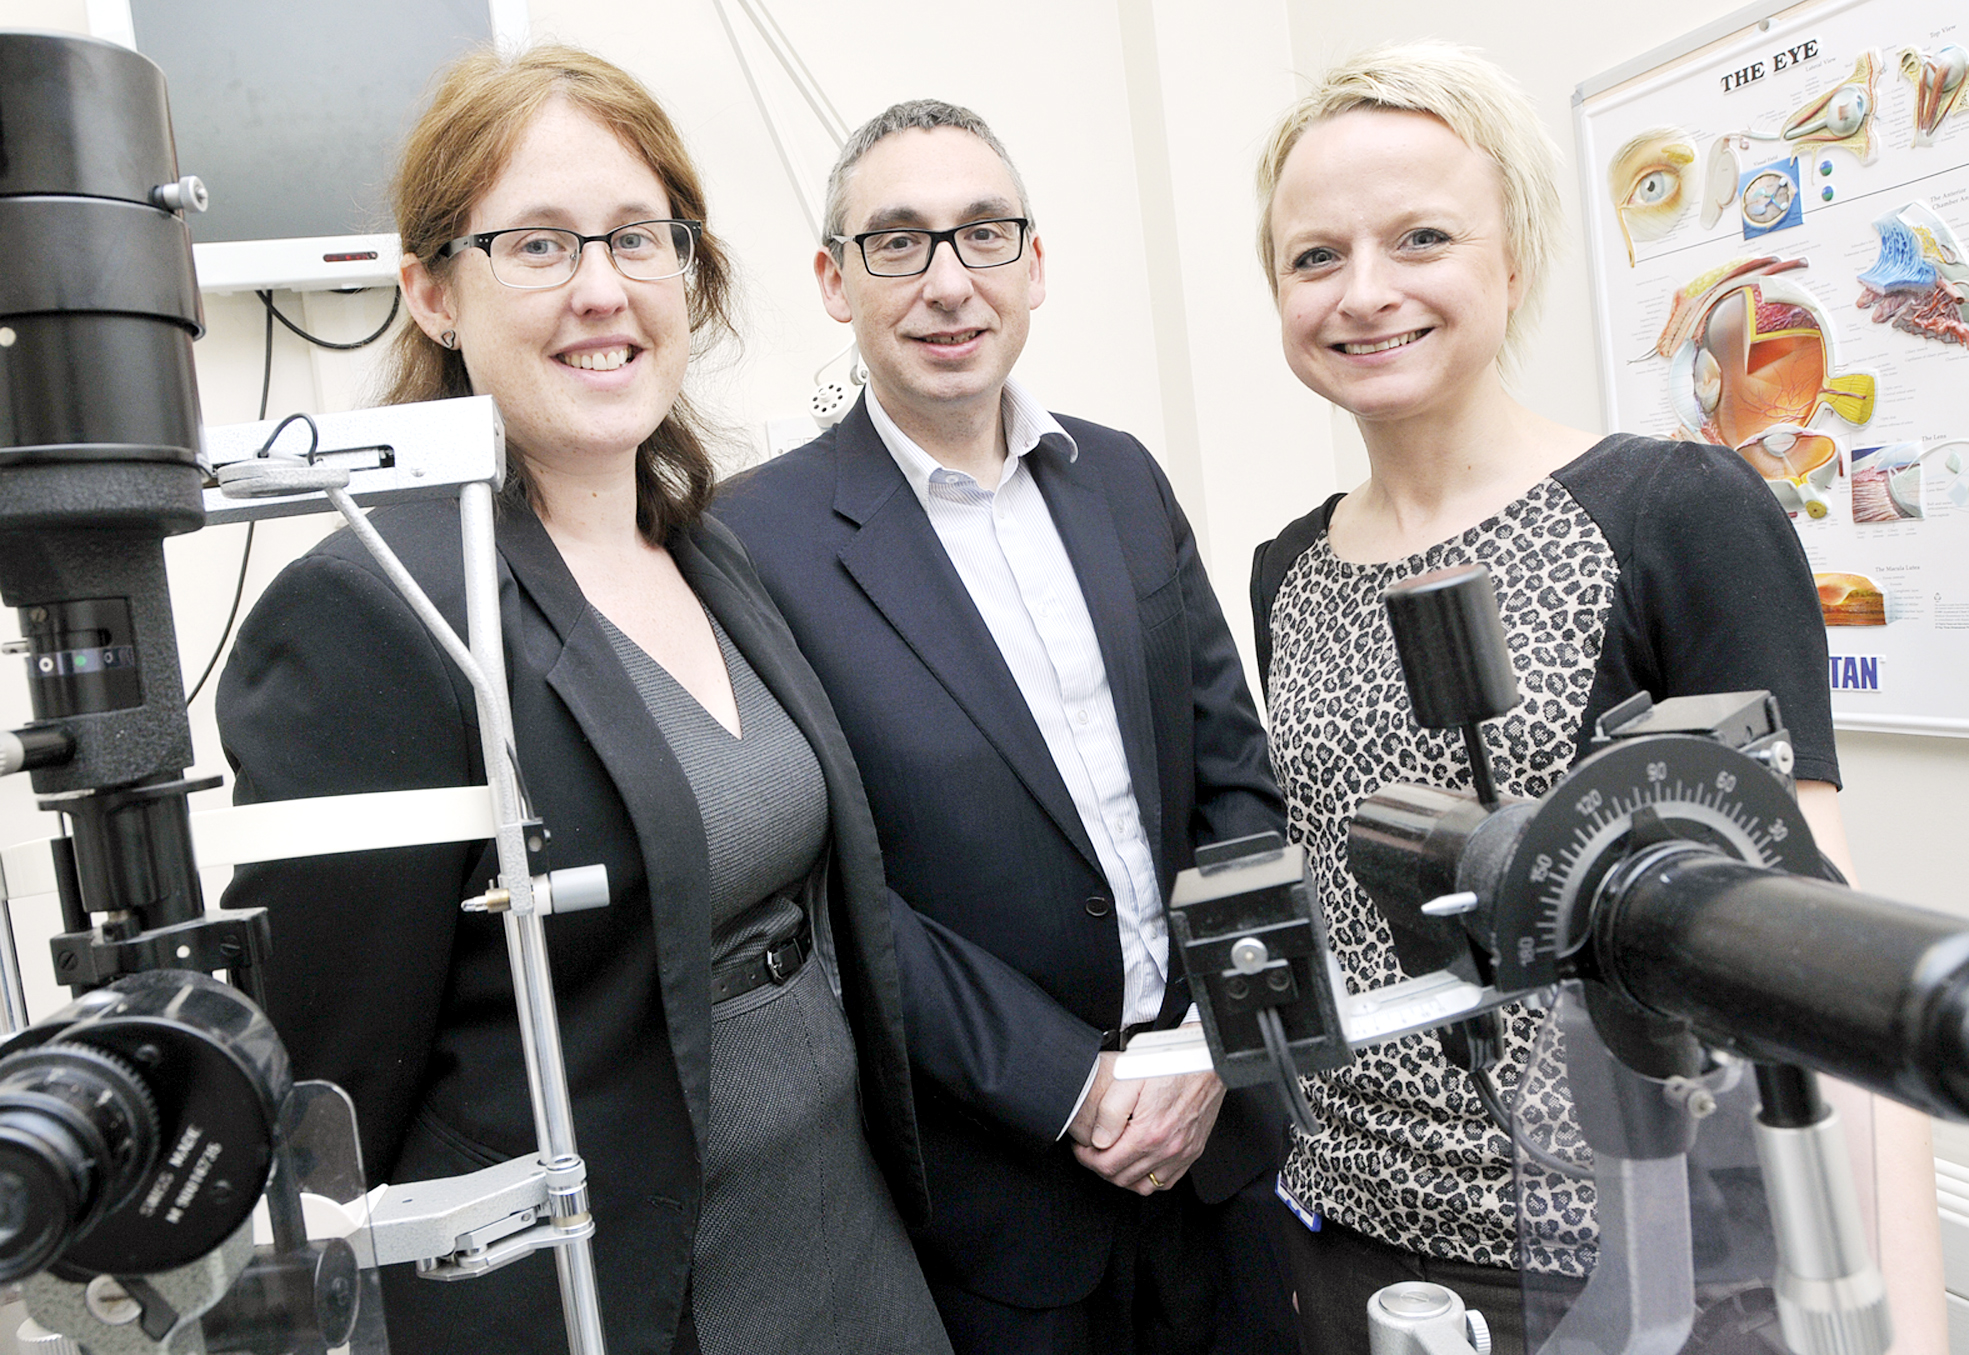 Bolton eye experts will assess Team GB Paralympic skiers at next games